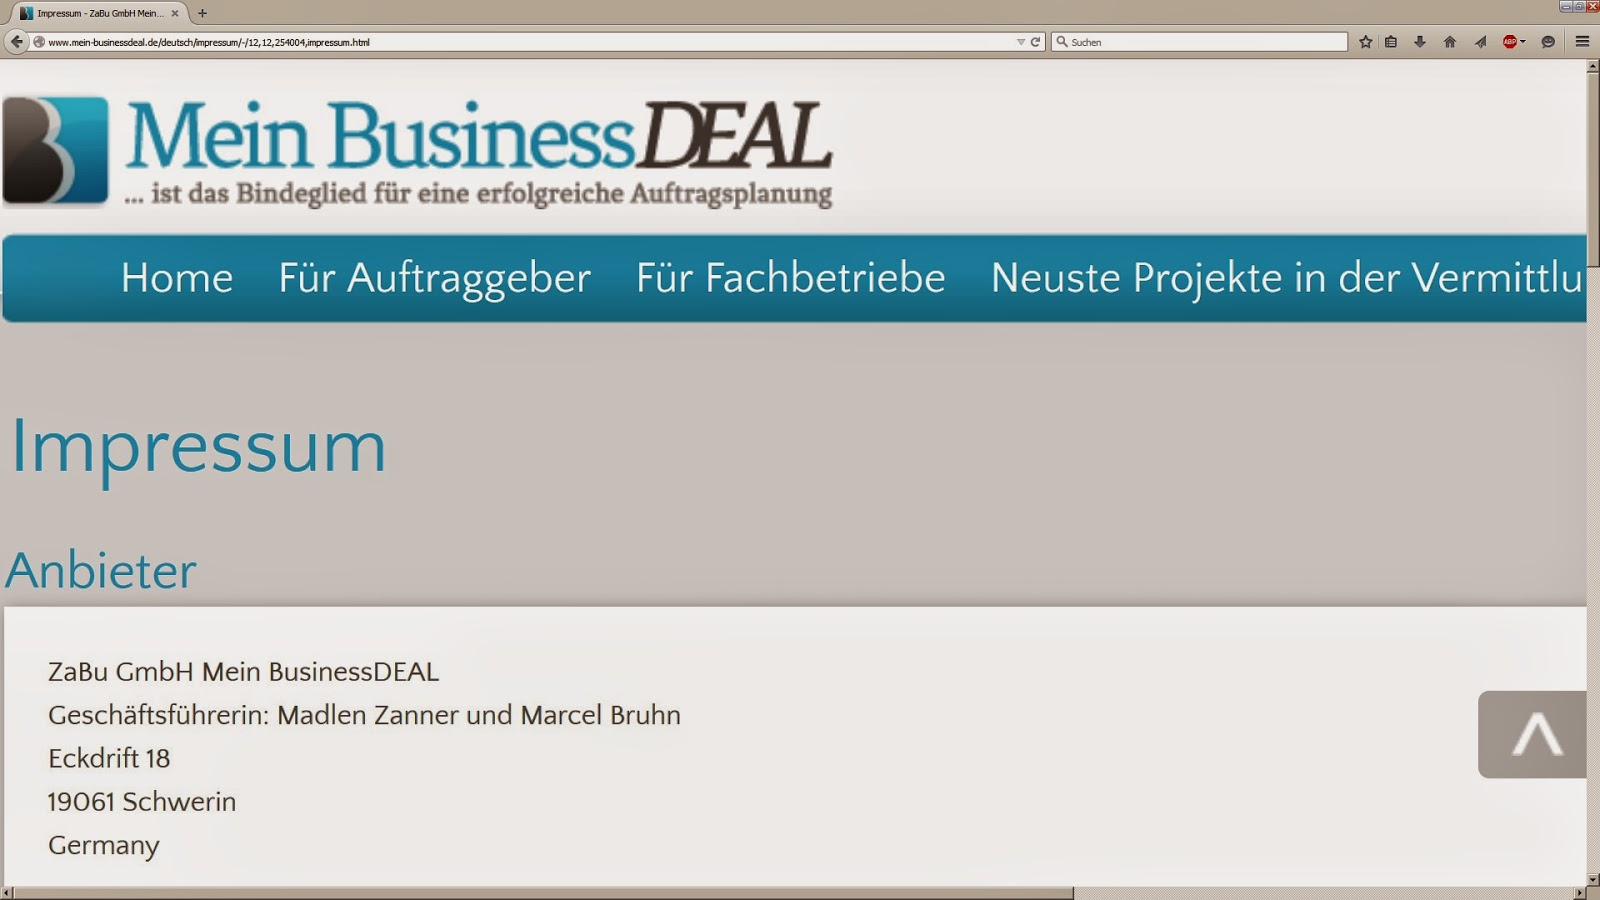 Bild von der Website Mein Business Deal